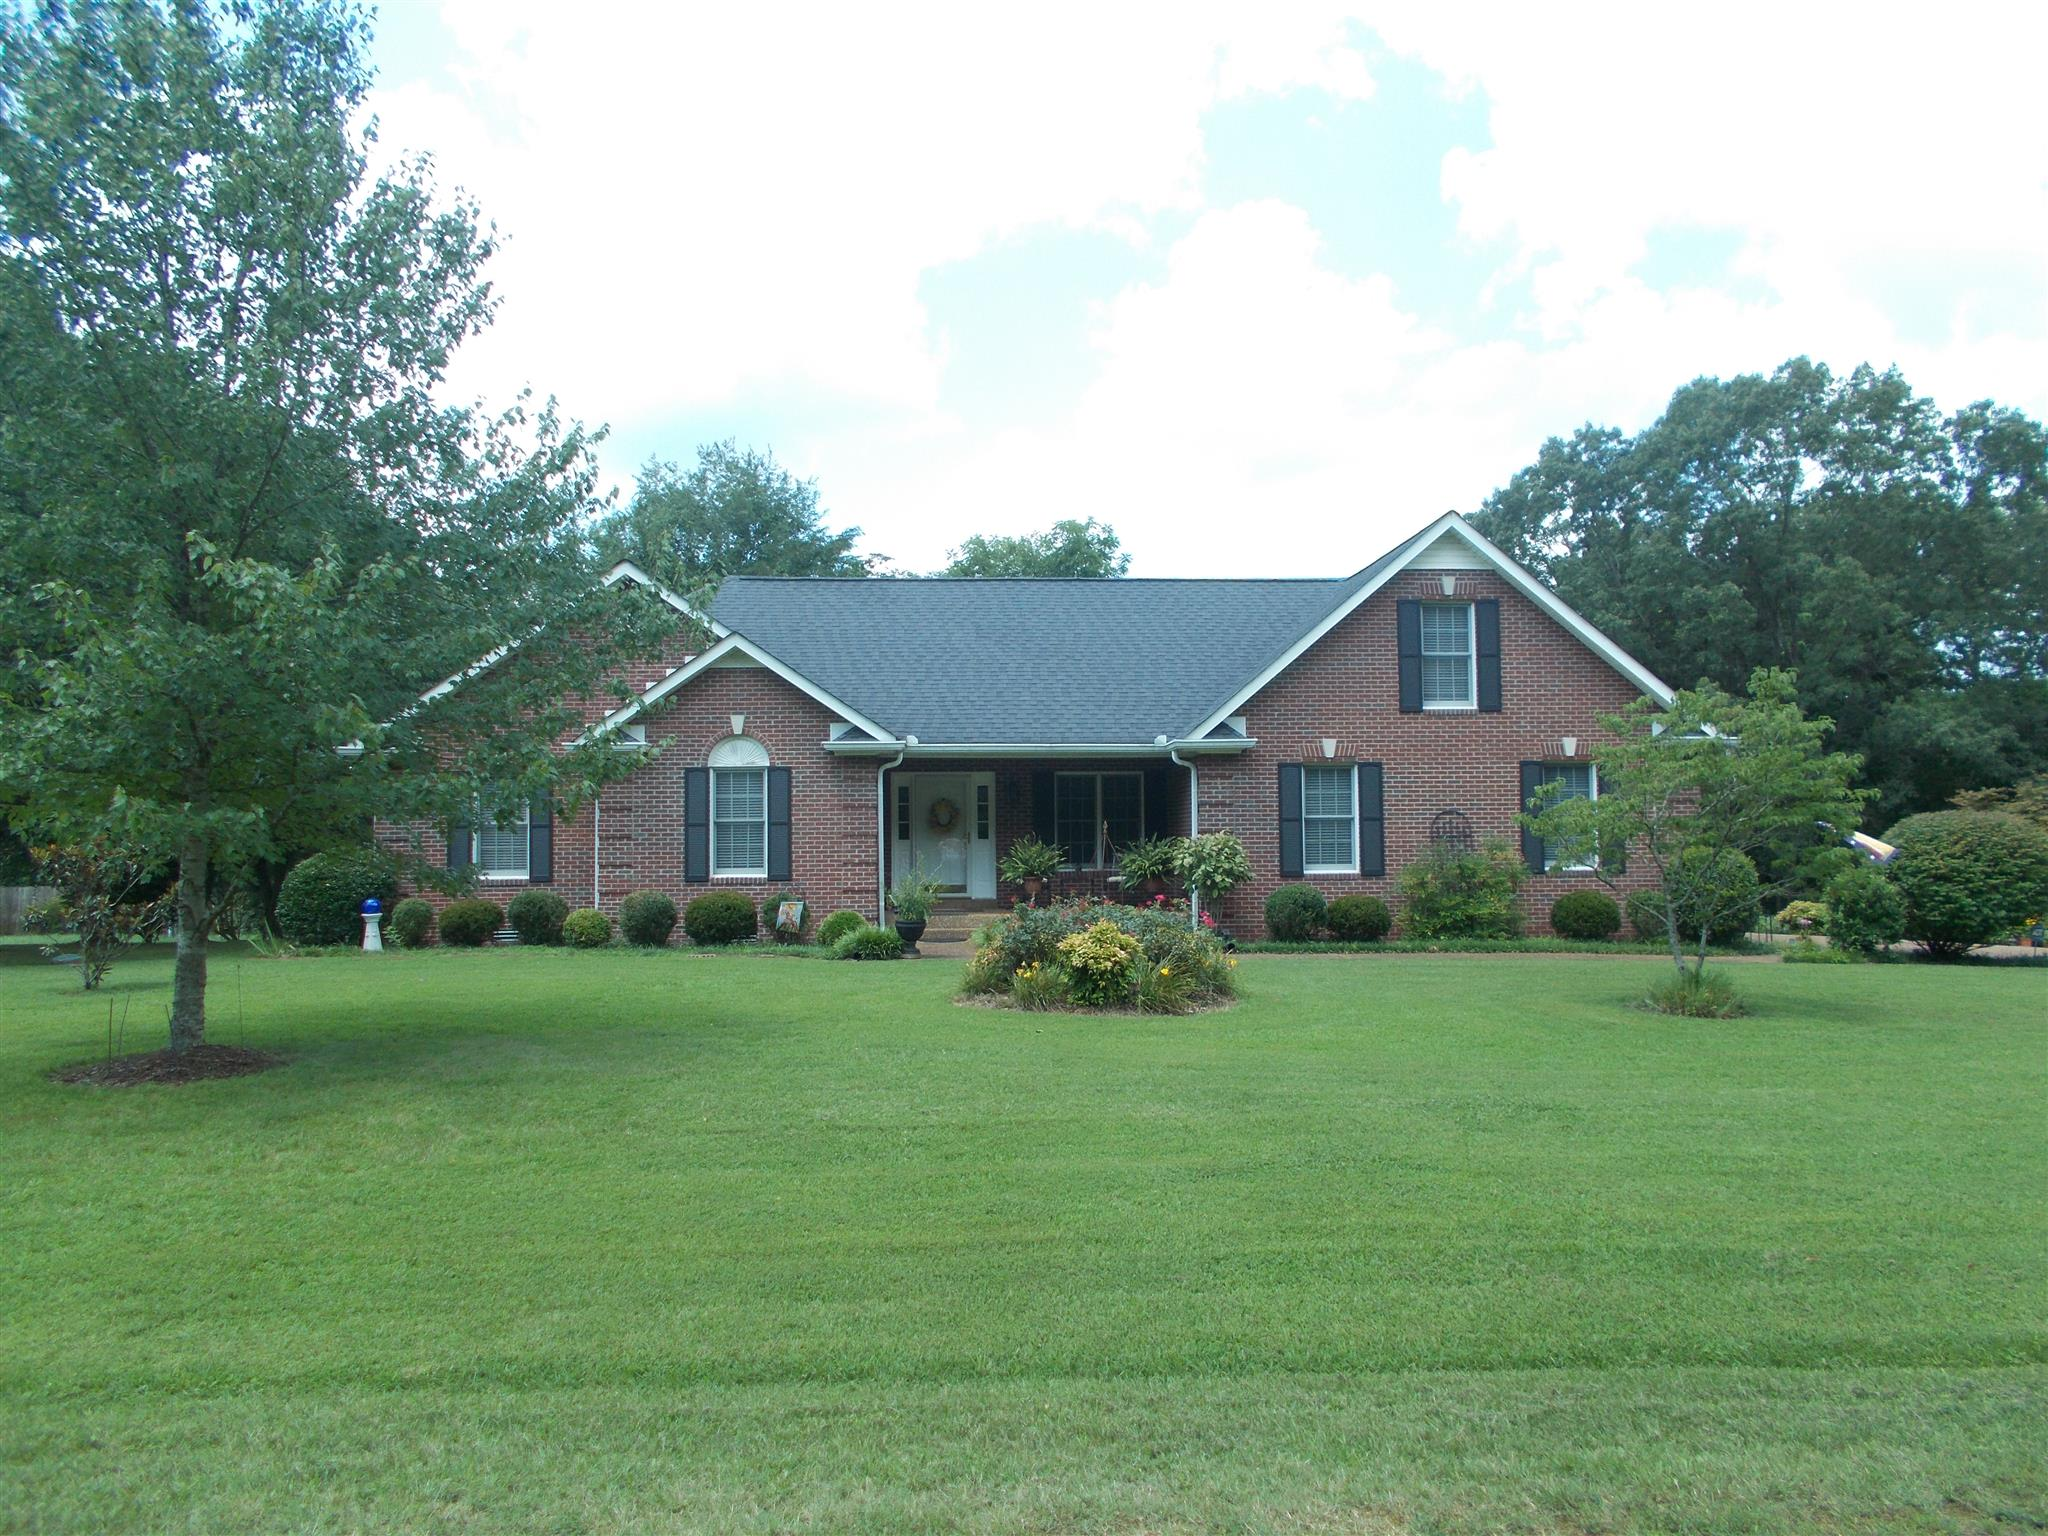 1017 Hagewood Ln, Ashland City, TN 37015 - Ashland City, TN real estate listing